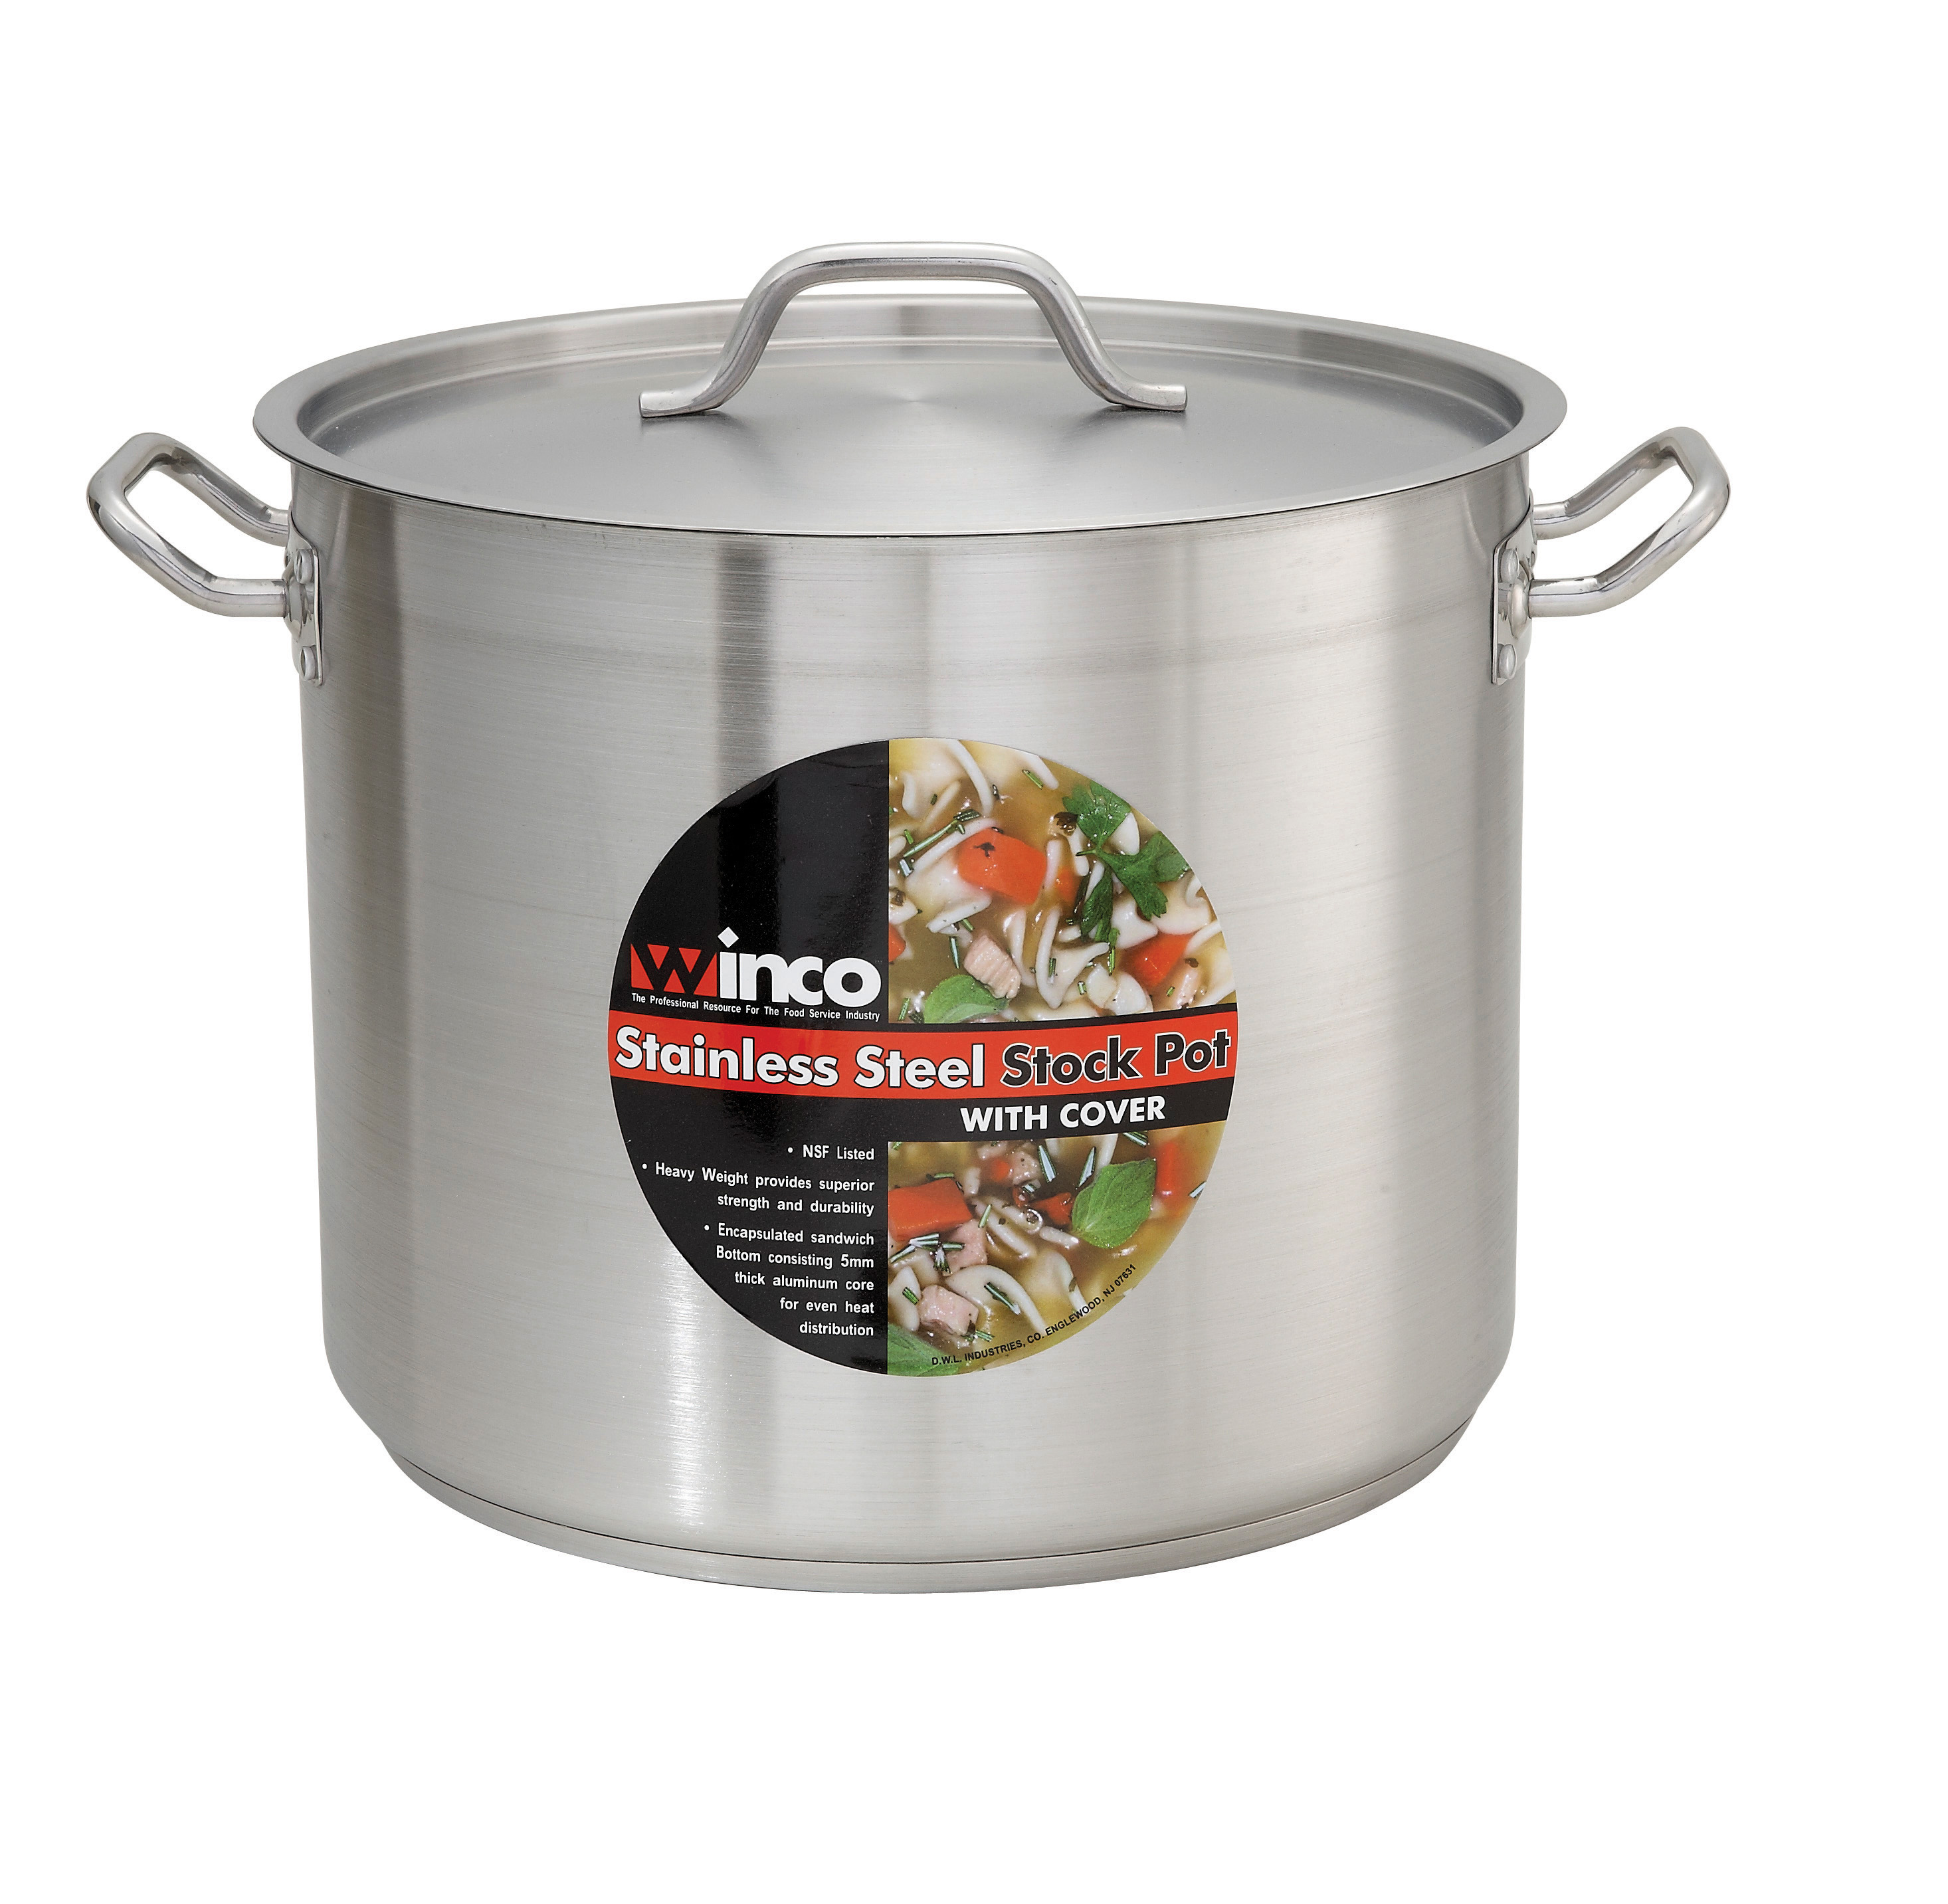 S/S Stock Pot 20 Qt w/ Cover, 11 7/8